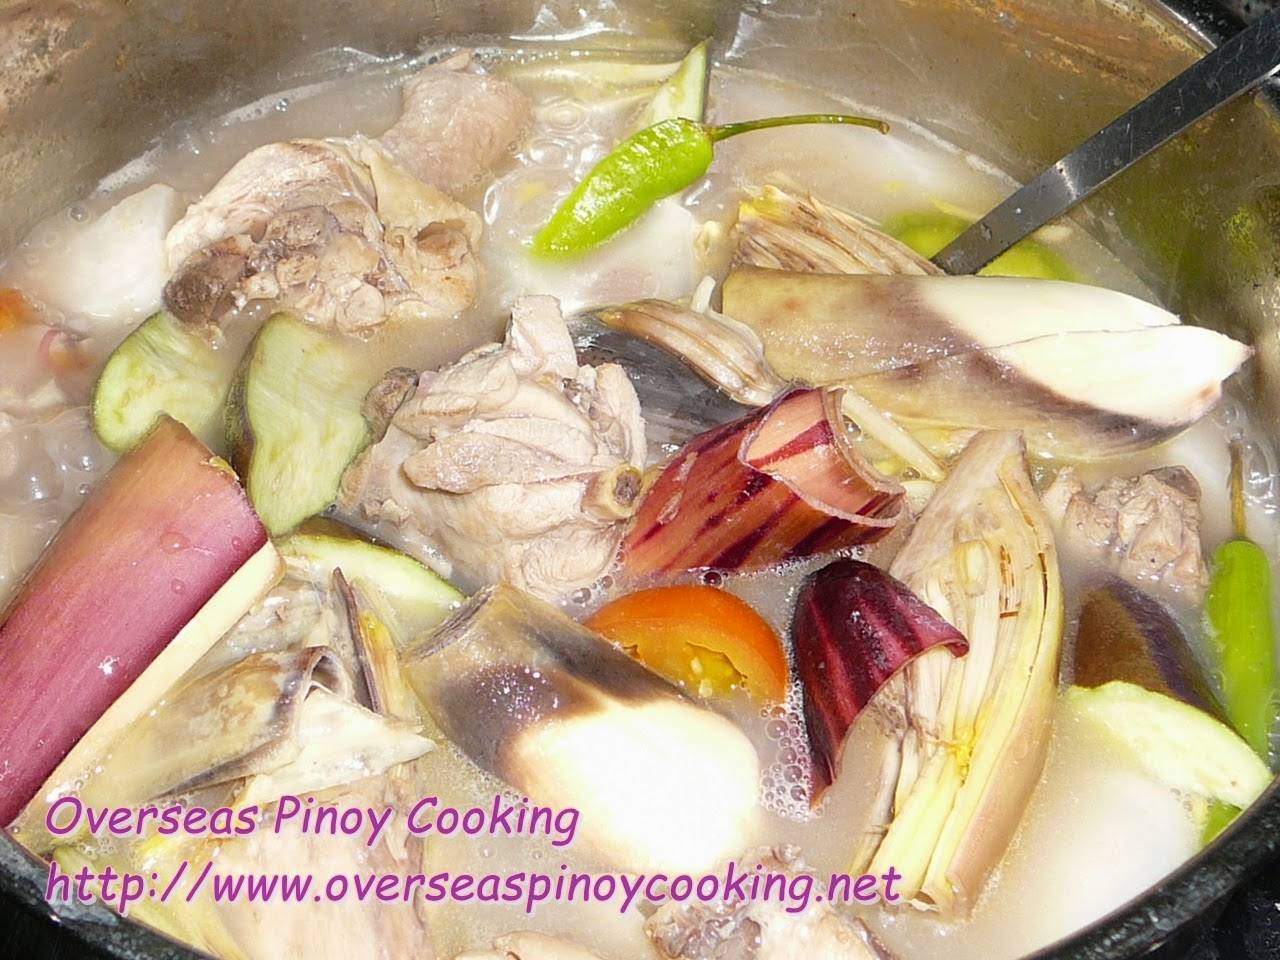 Sinigang na Manok with Banana Blossom - Cooking Procedure